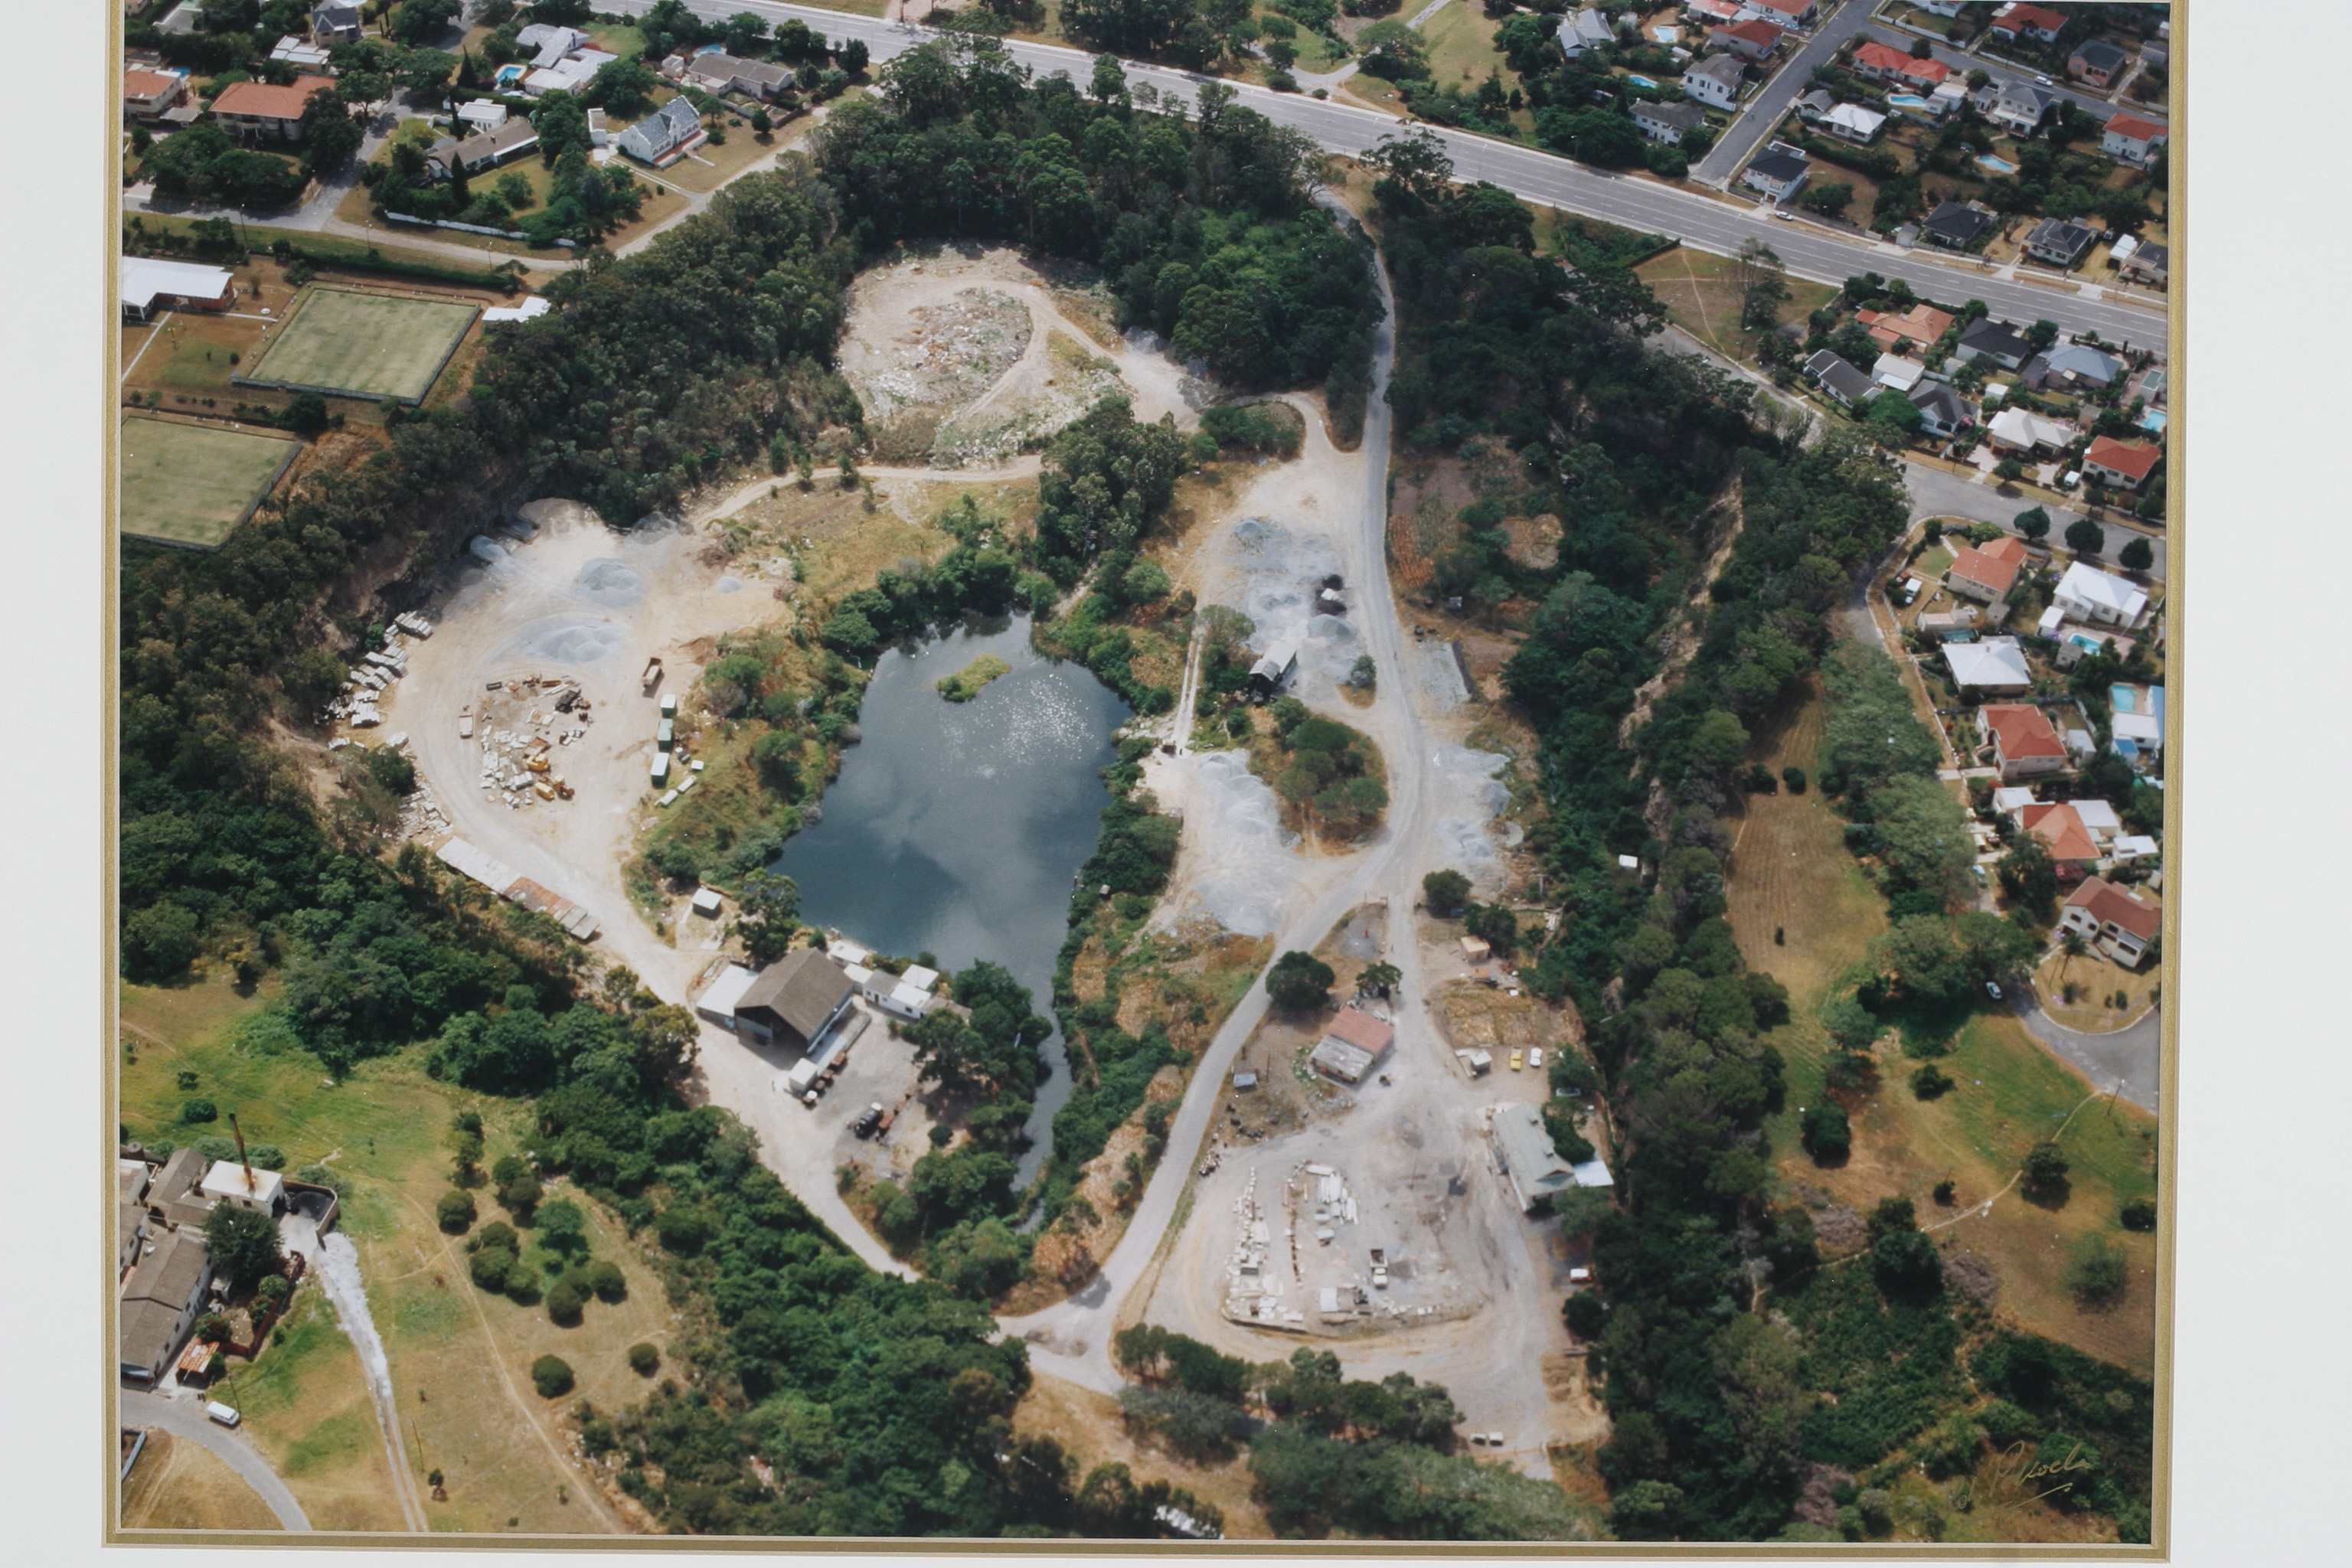 Aerial view of the Quarry in 1990